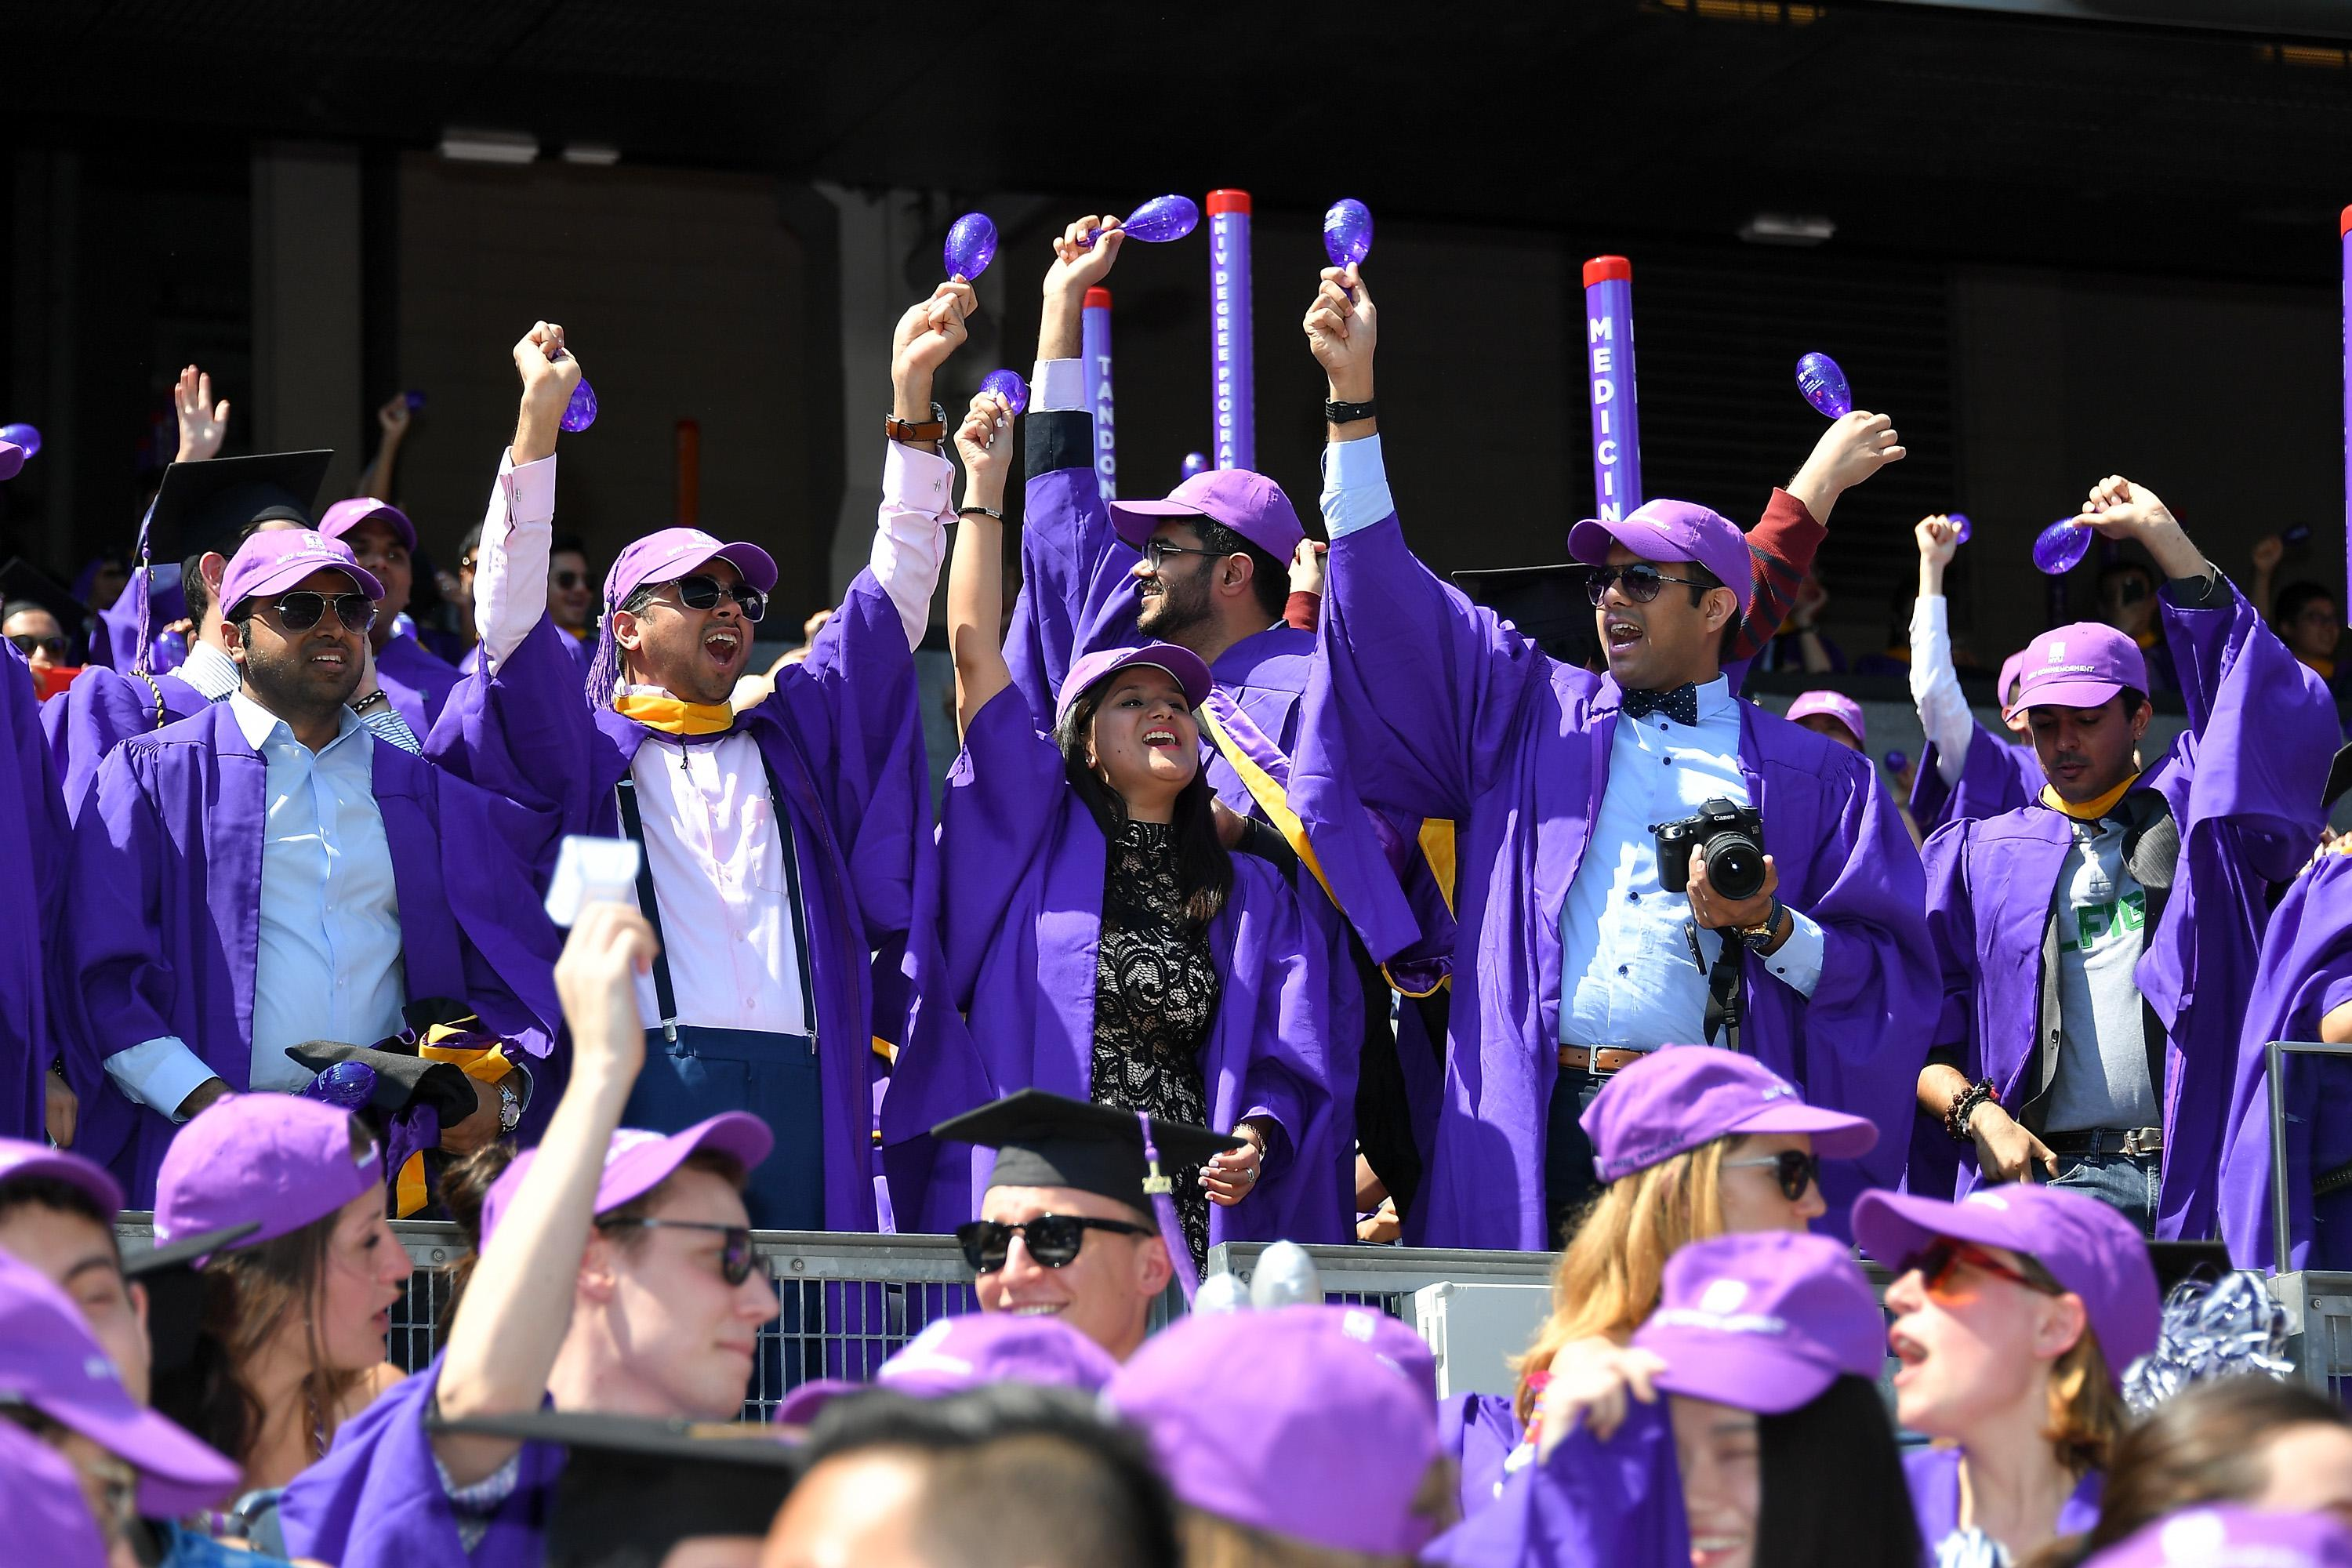 NEW YORK, NY - MAY 17:  Students attend the New York University 2017 Commencement at Yankee Stadium on May 17, 2017 in the Bronx borough of New York City.  (Photo by Dia Dipasupil/Getty Images)